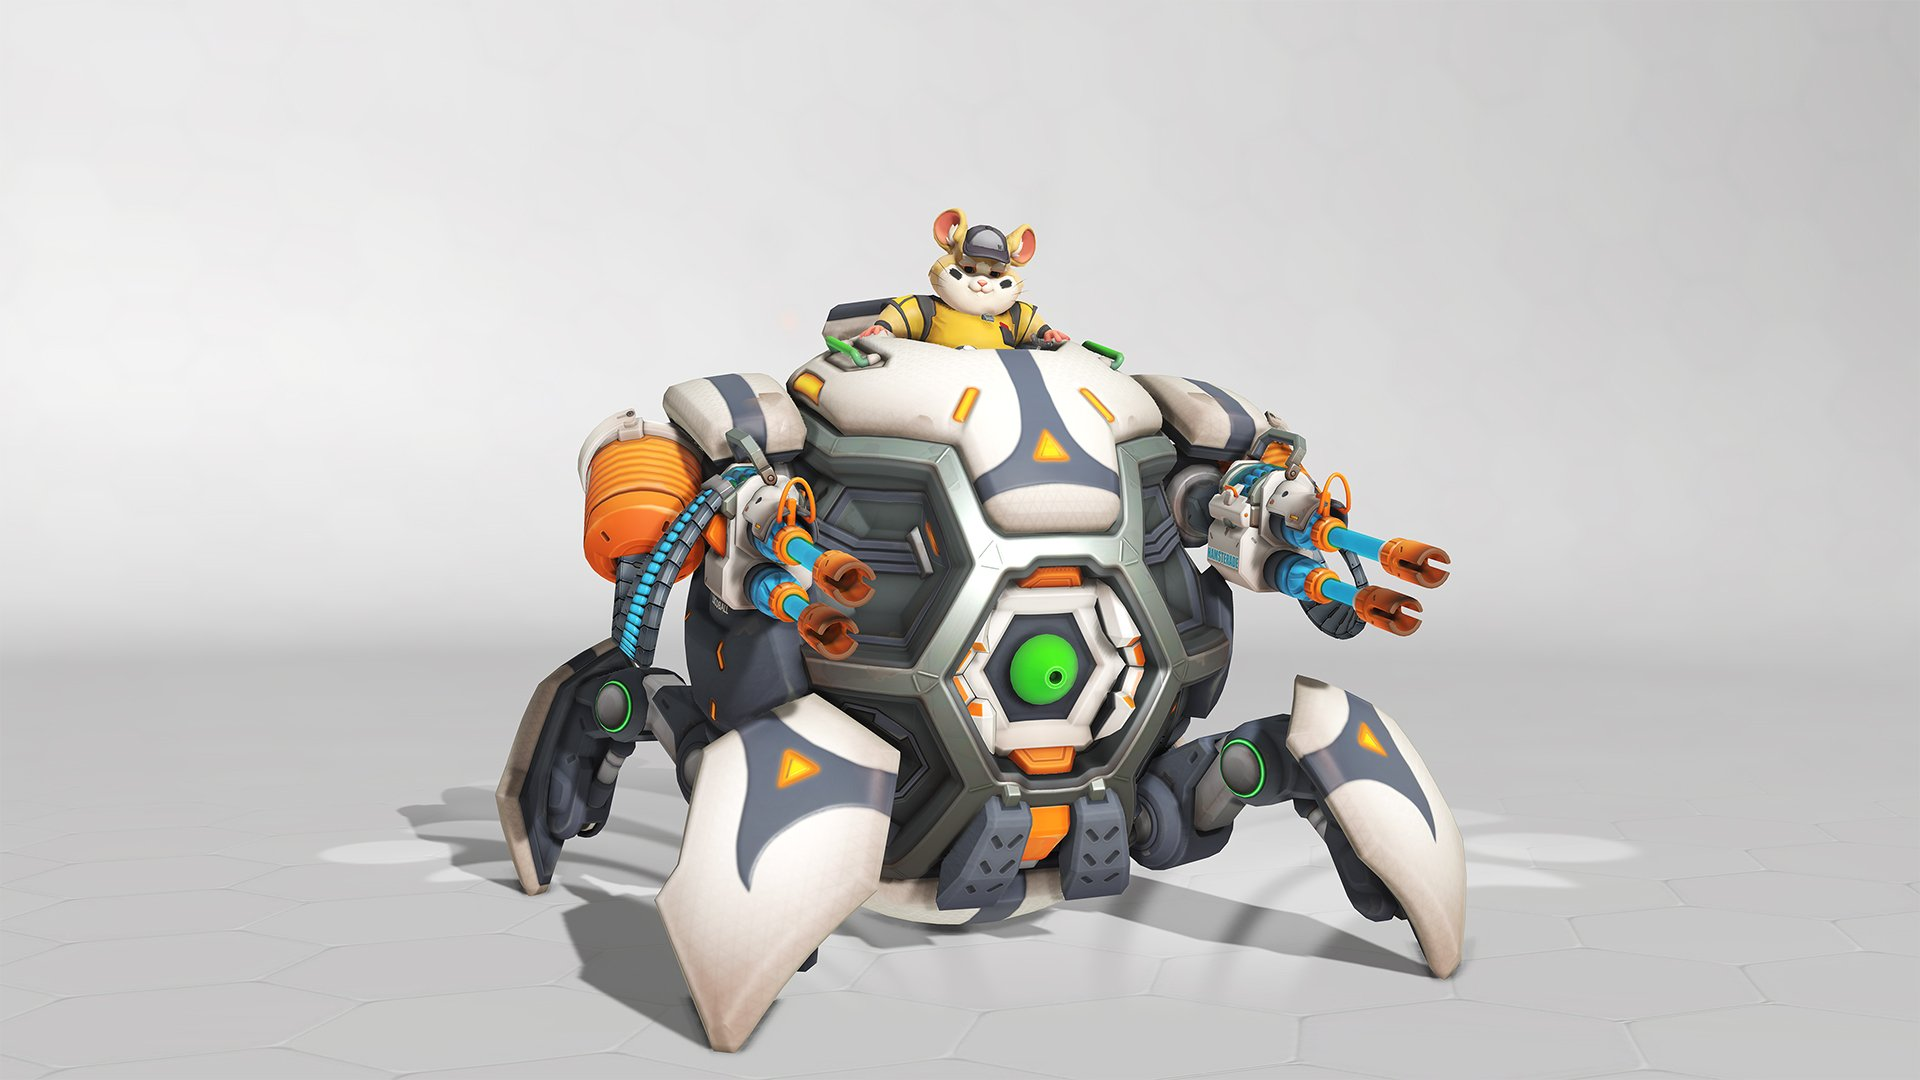 Overwatch summer Games 2019 Wrecking Ball Skin